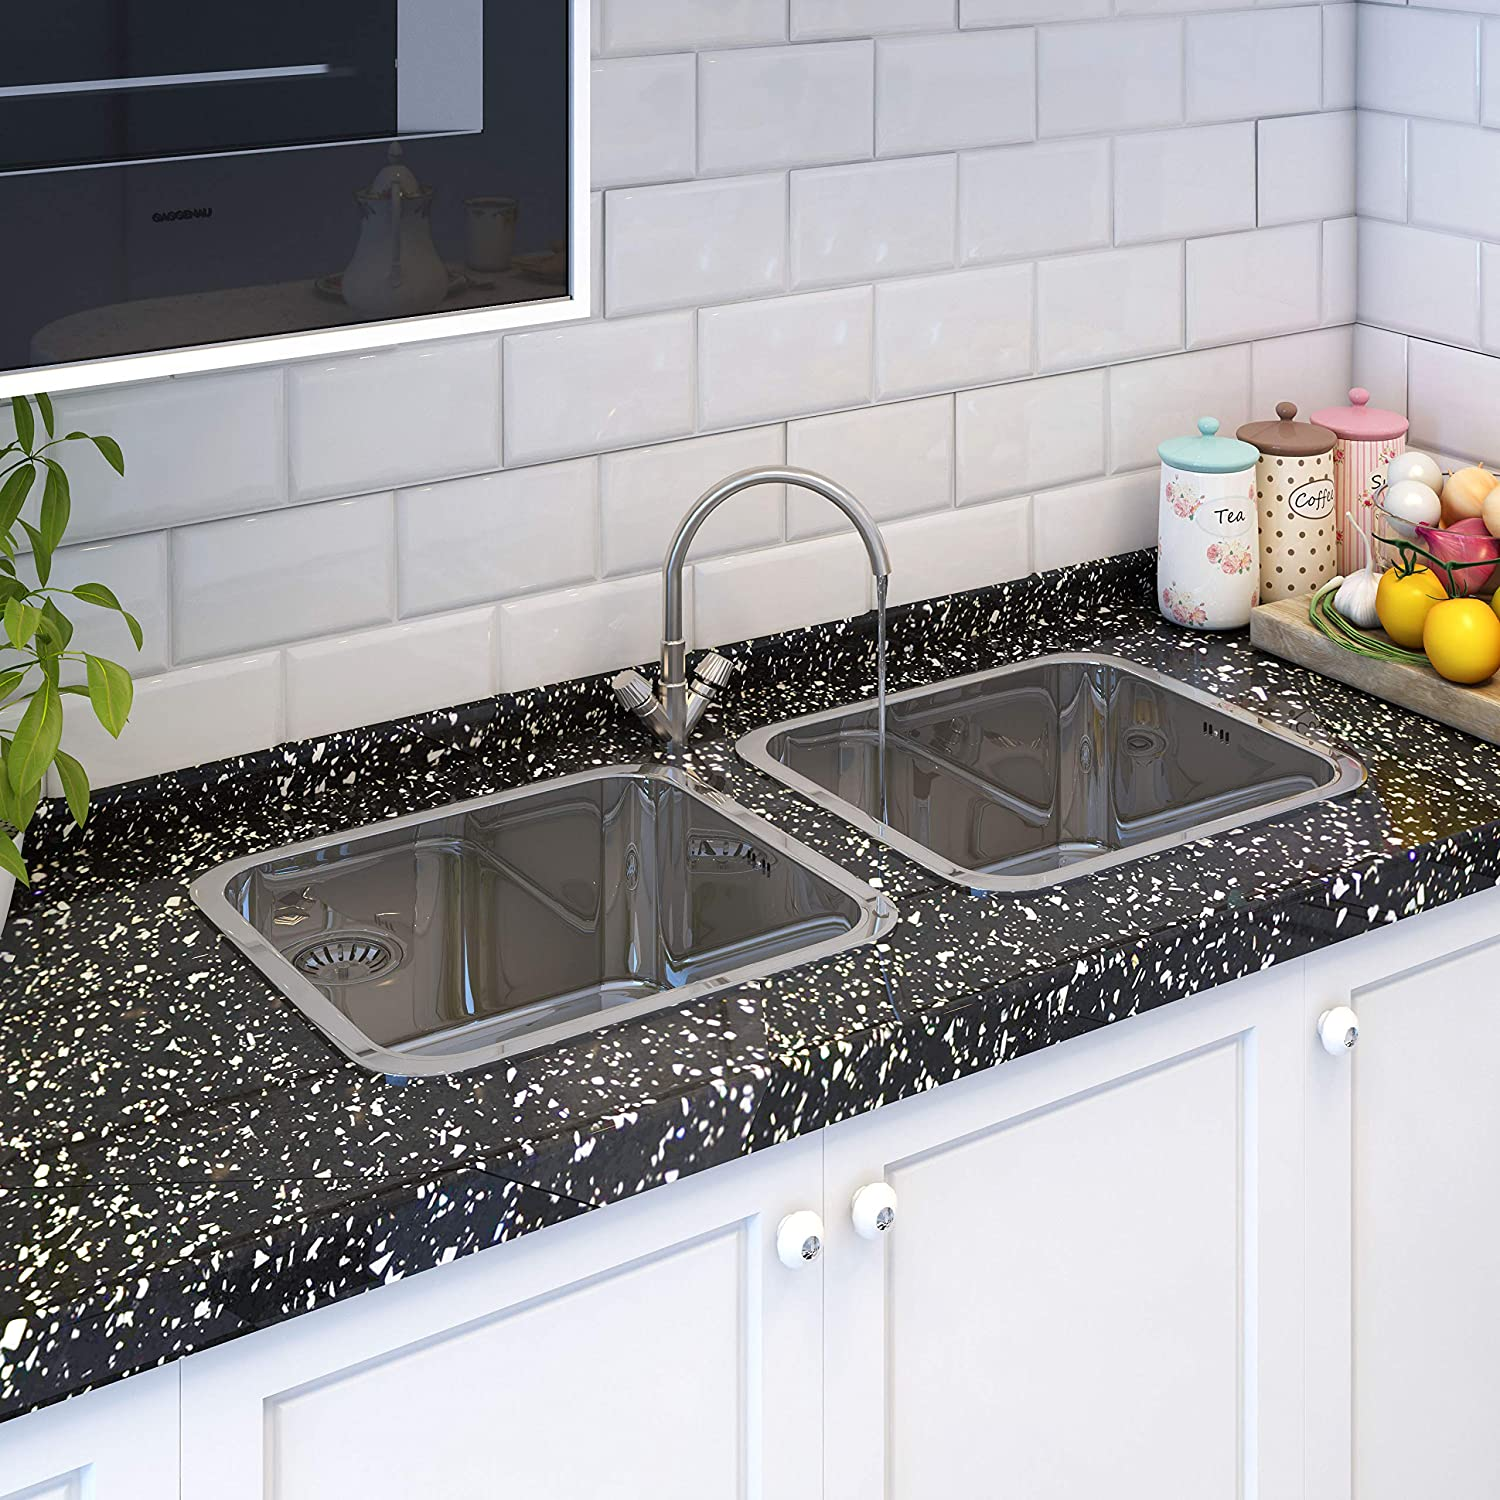 Kitchen Sink Single Bowl Stainless Steel with Reversible Drainer Waste Style 2 Square Undermount Drop-in Installation